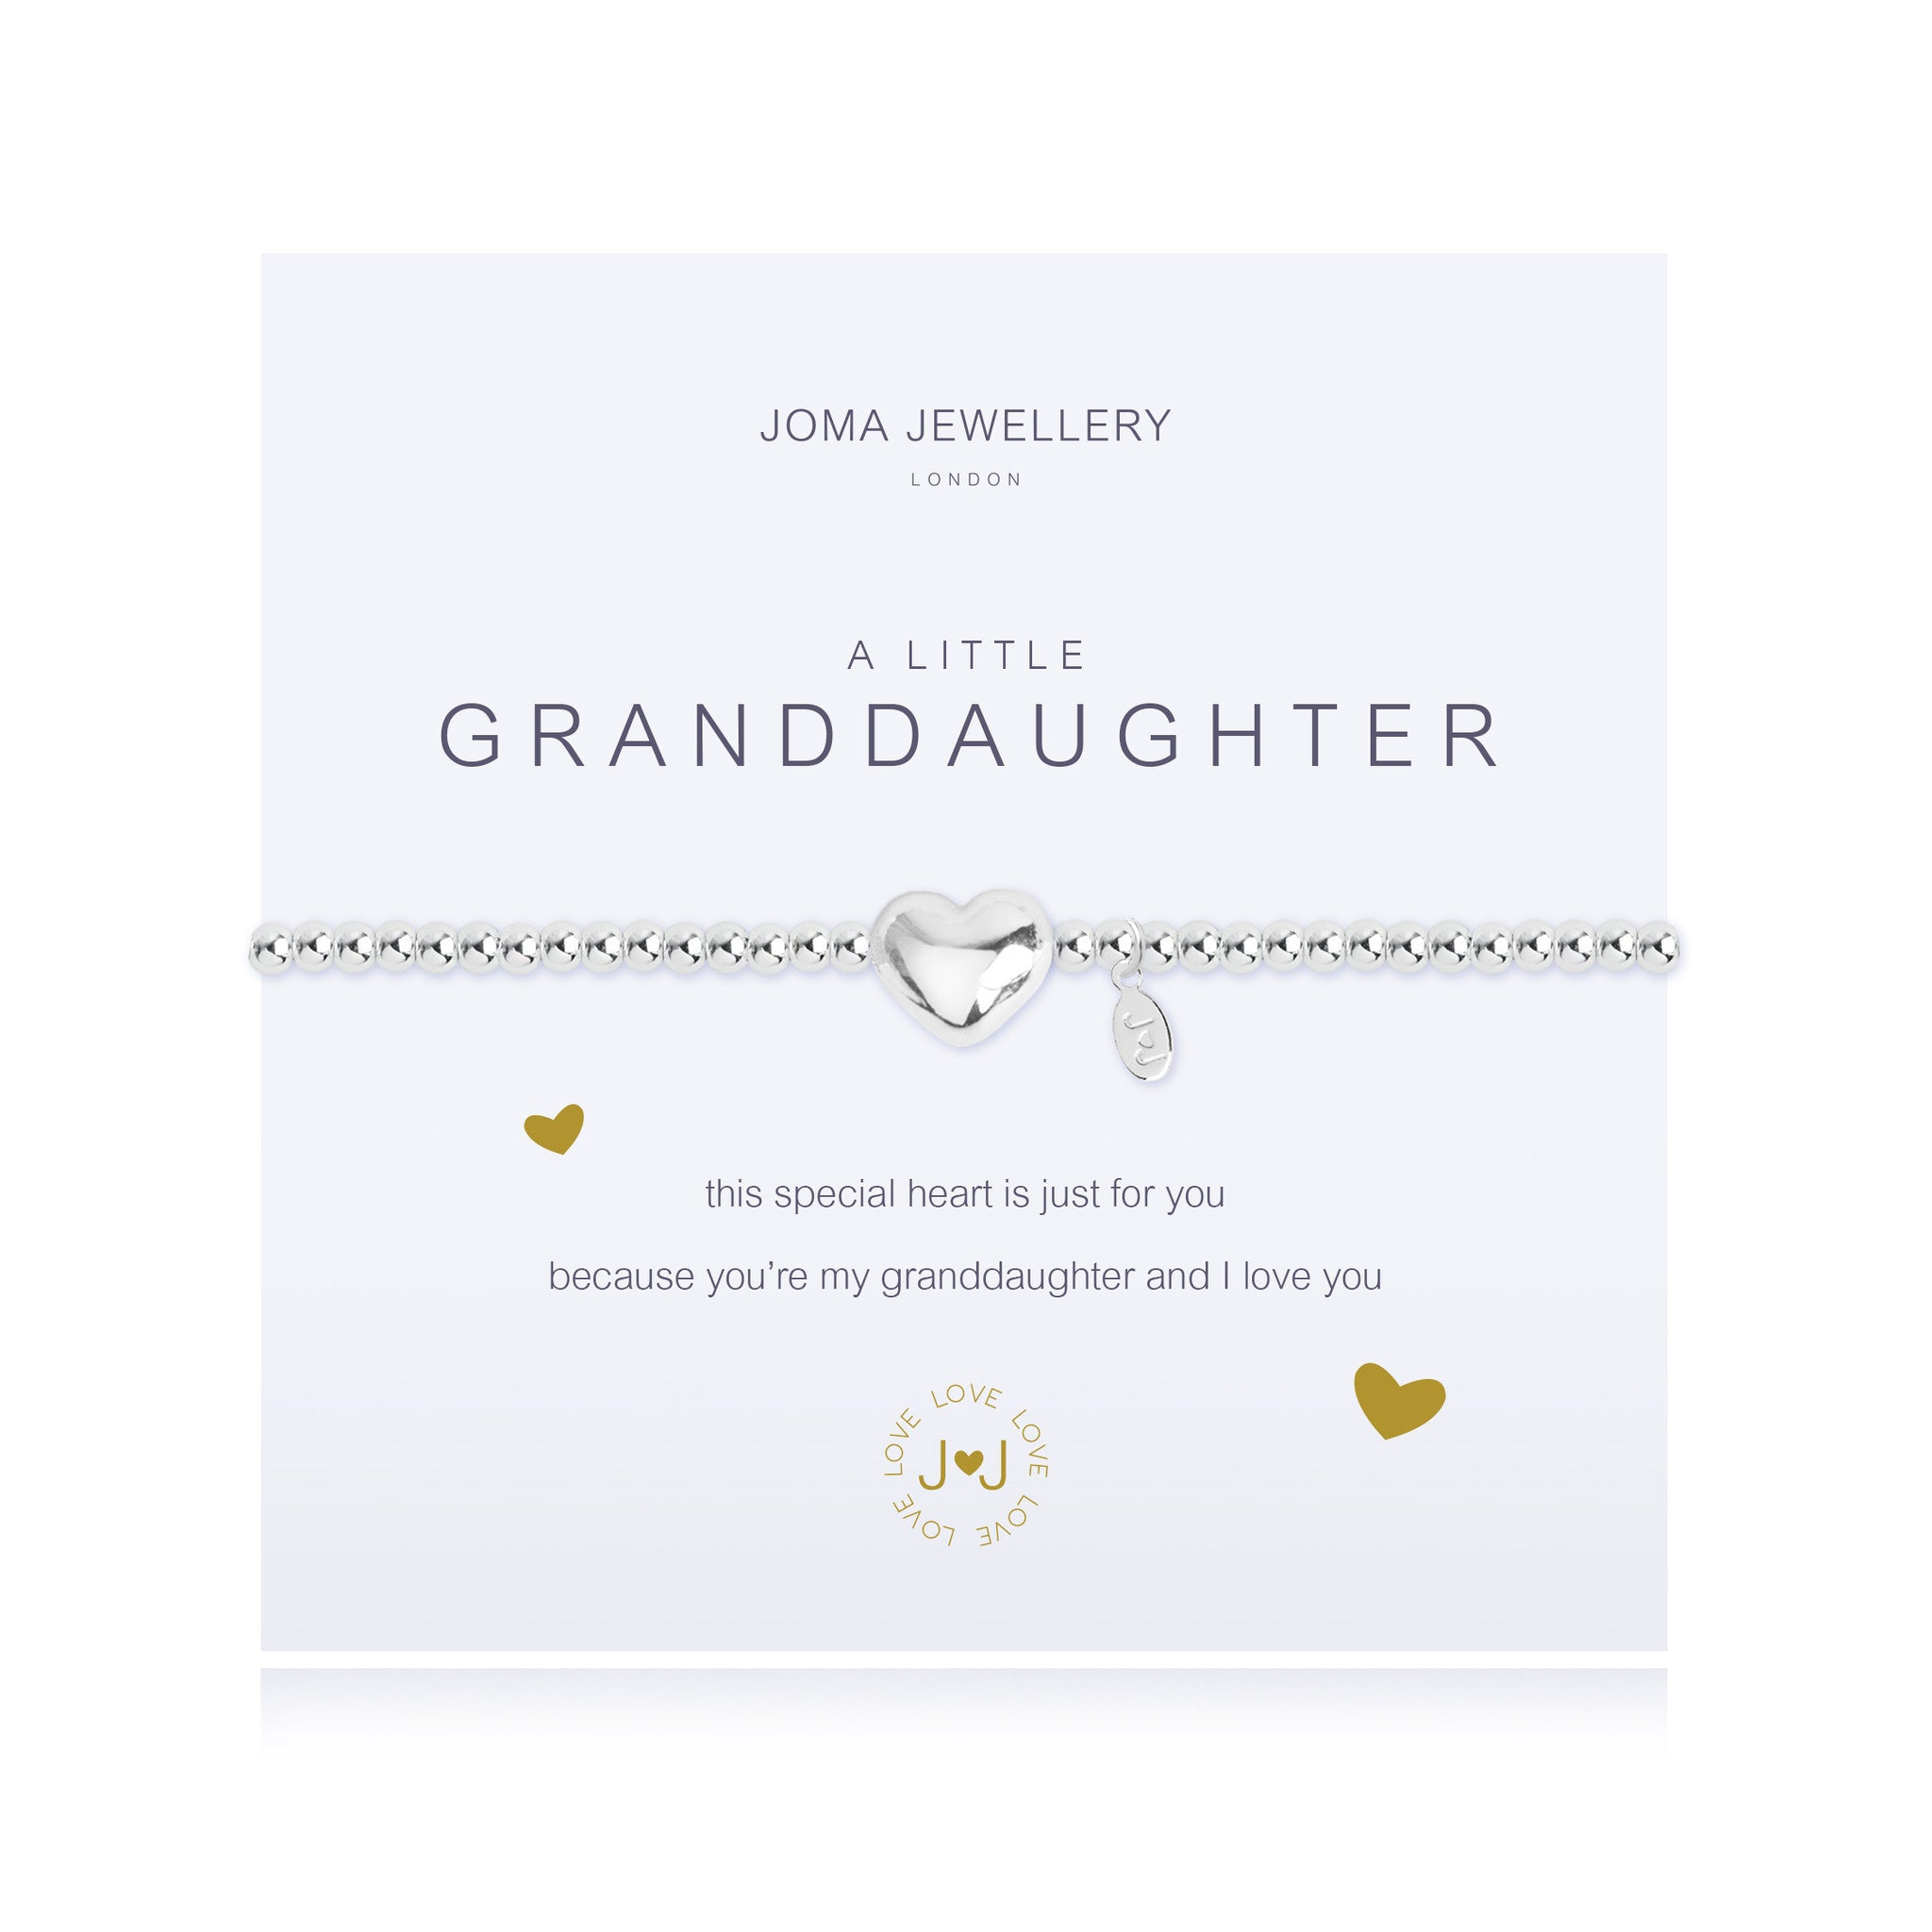 Joma Jewellery a little Granddaughter